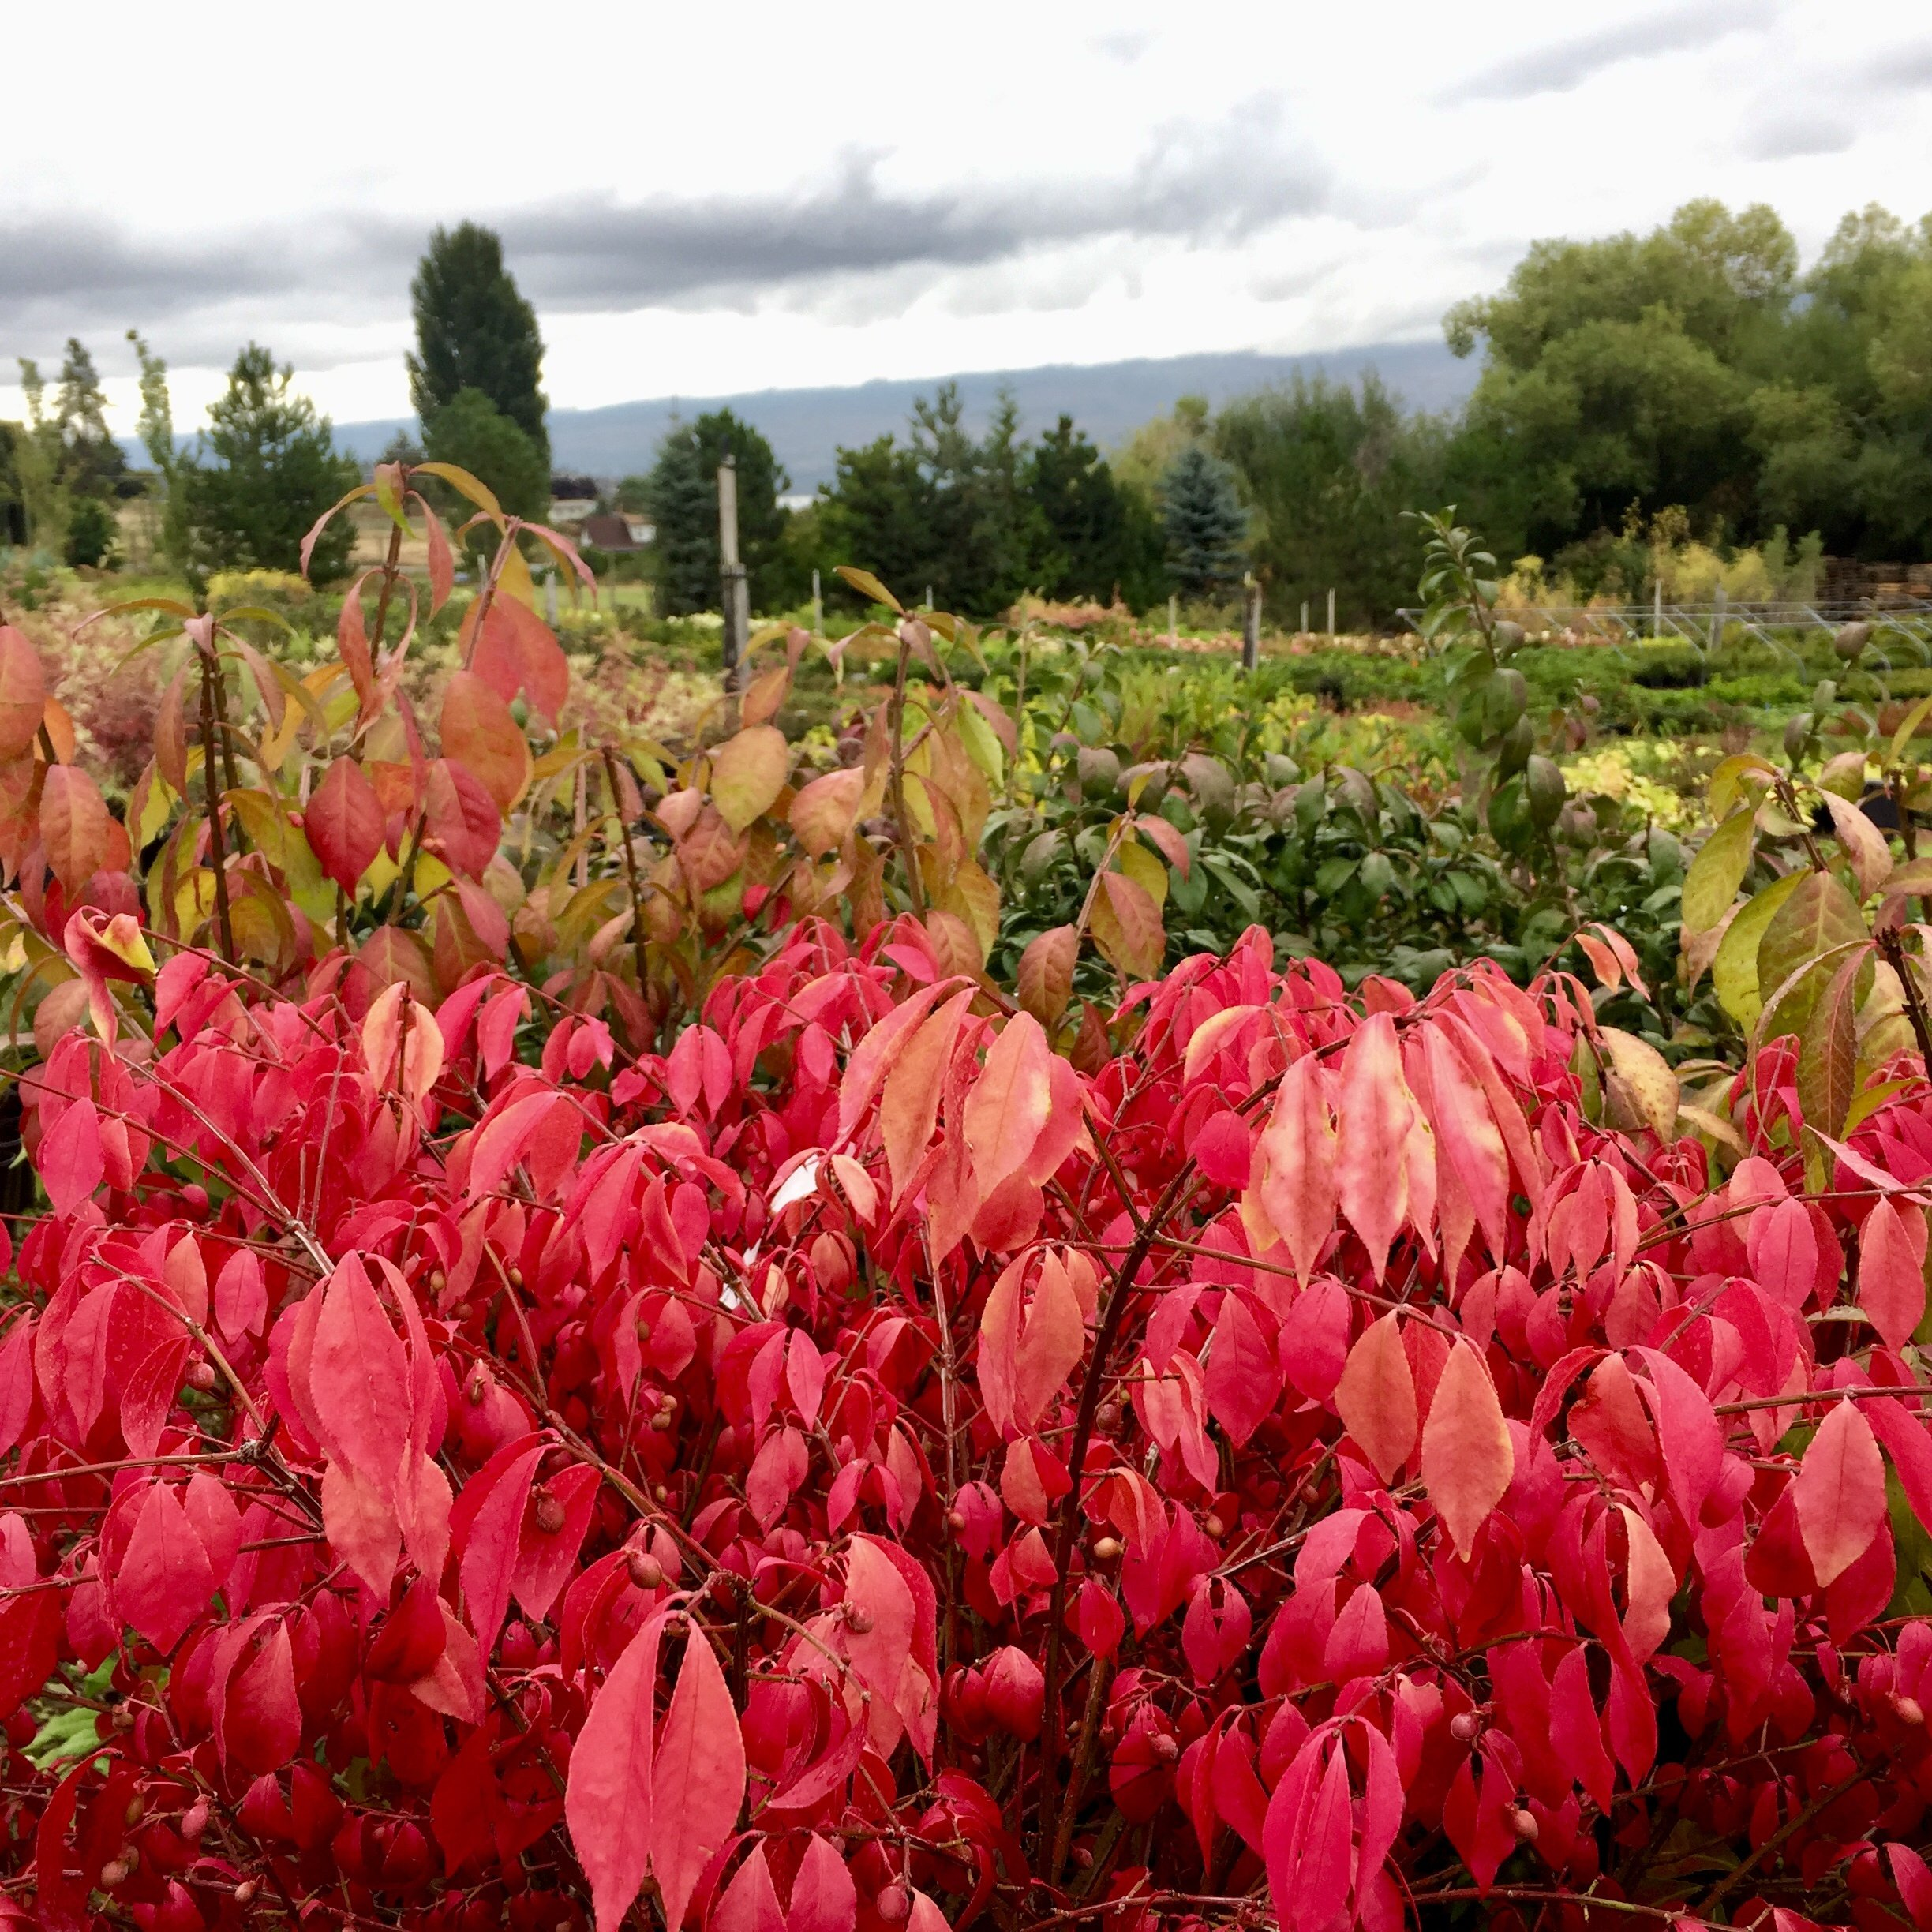 Burning bush for autumn colour